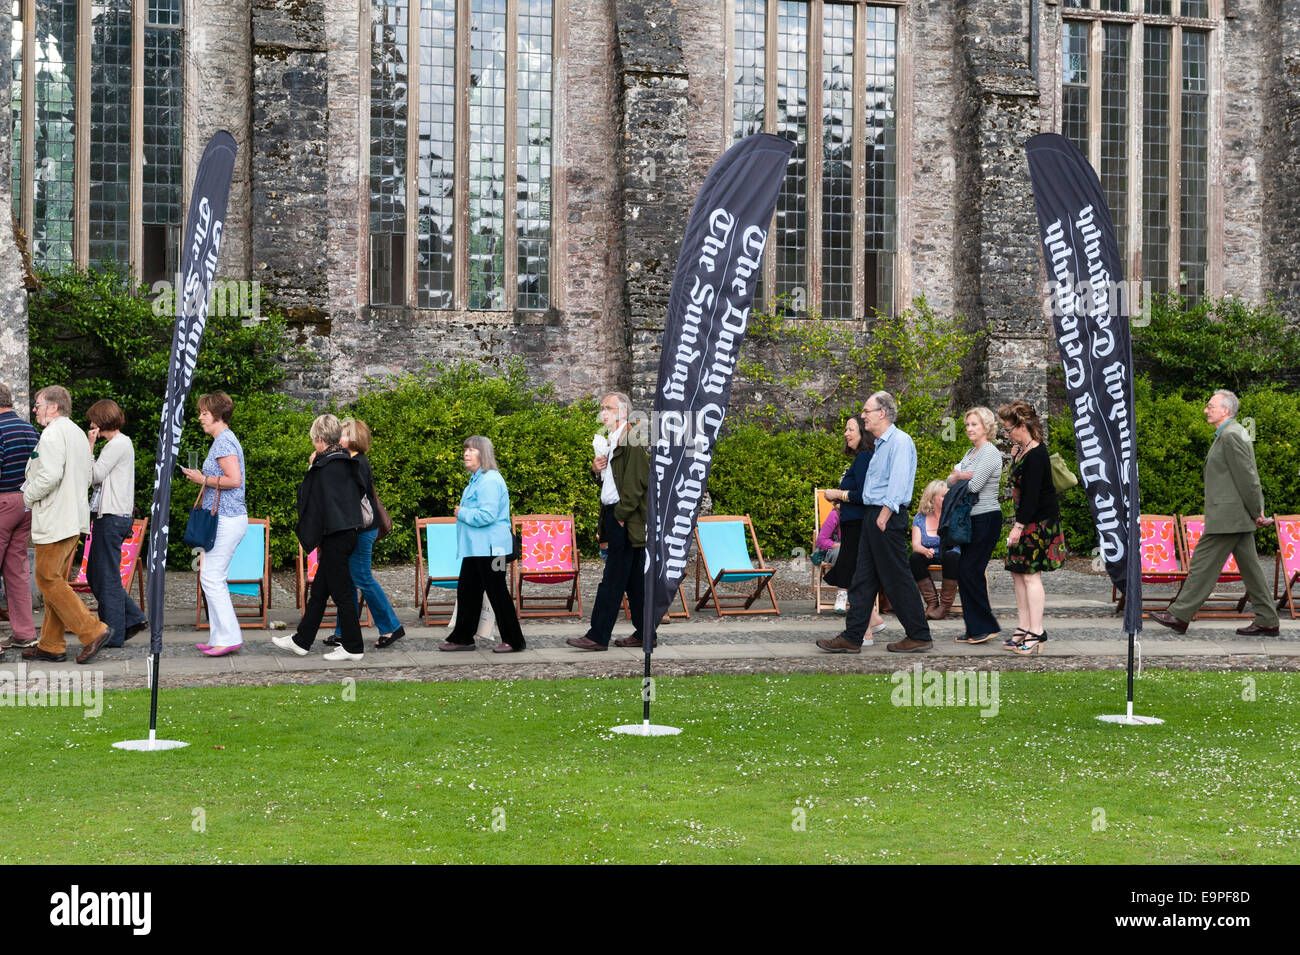 Dartington Hall, Totnes, Devon, UK. Festival goers queue for entry at the Ways With Words literary festival - Stock Image